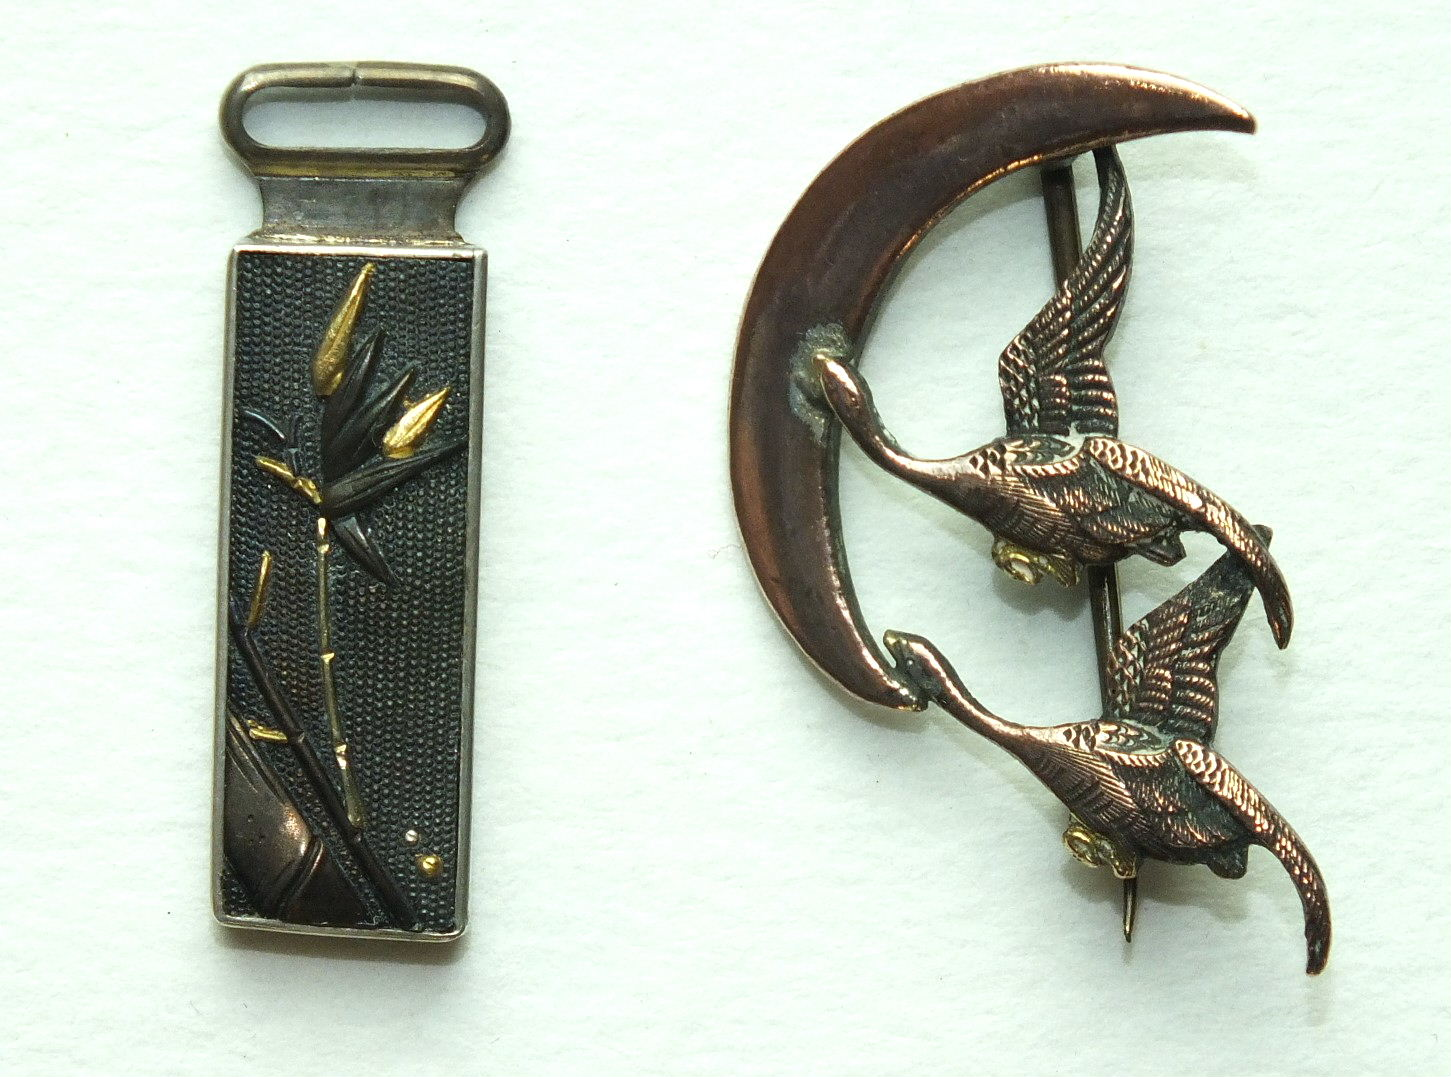 A small oblong Skakudo pendant with bamboo decoration, 32mm long and a brooch in the form of two